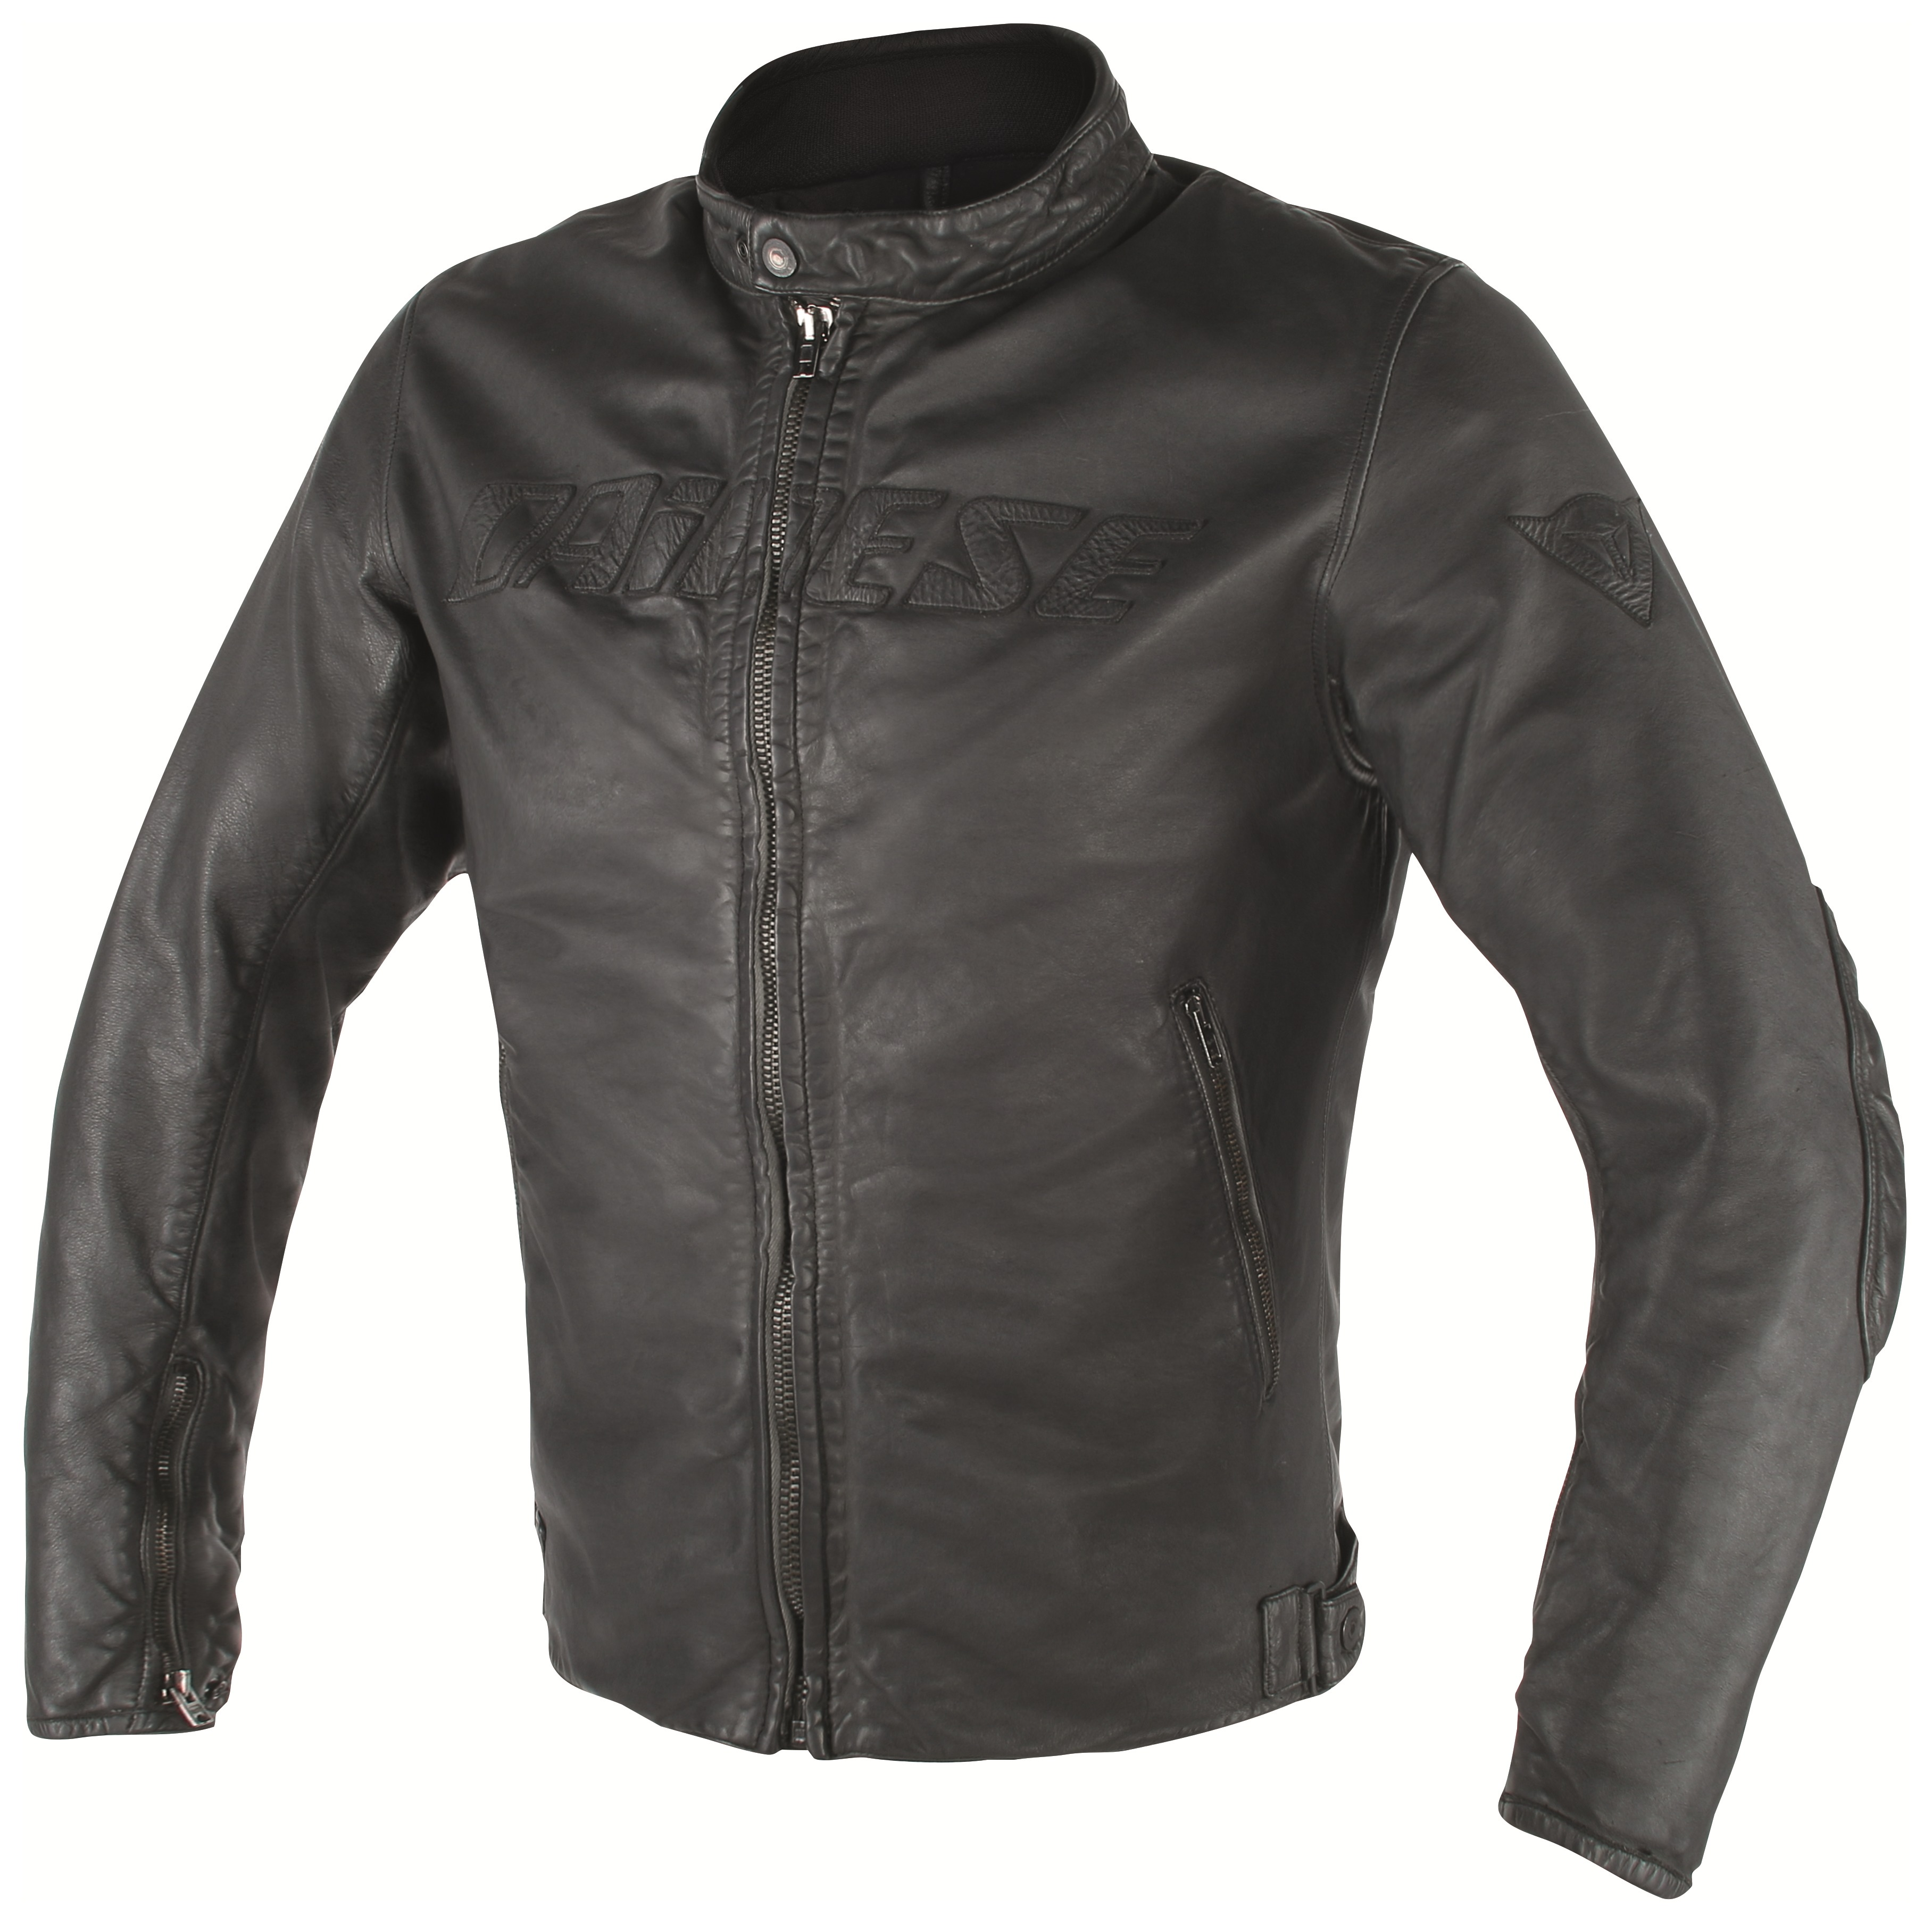 Dainese archivio d1 perforated leather jacket 30 209 for D garage dainese corbeil horaires